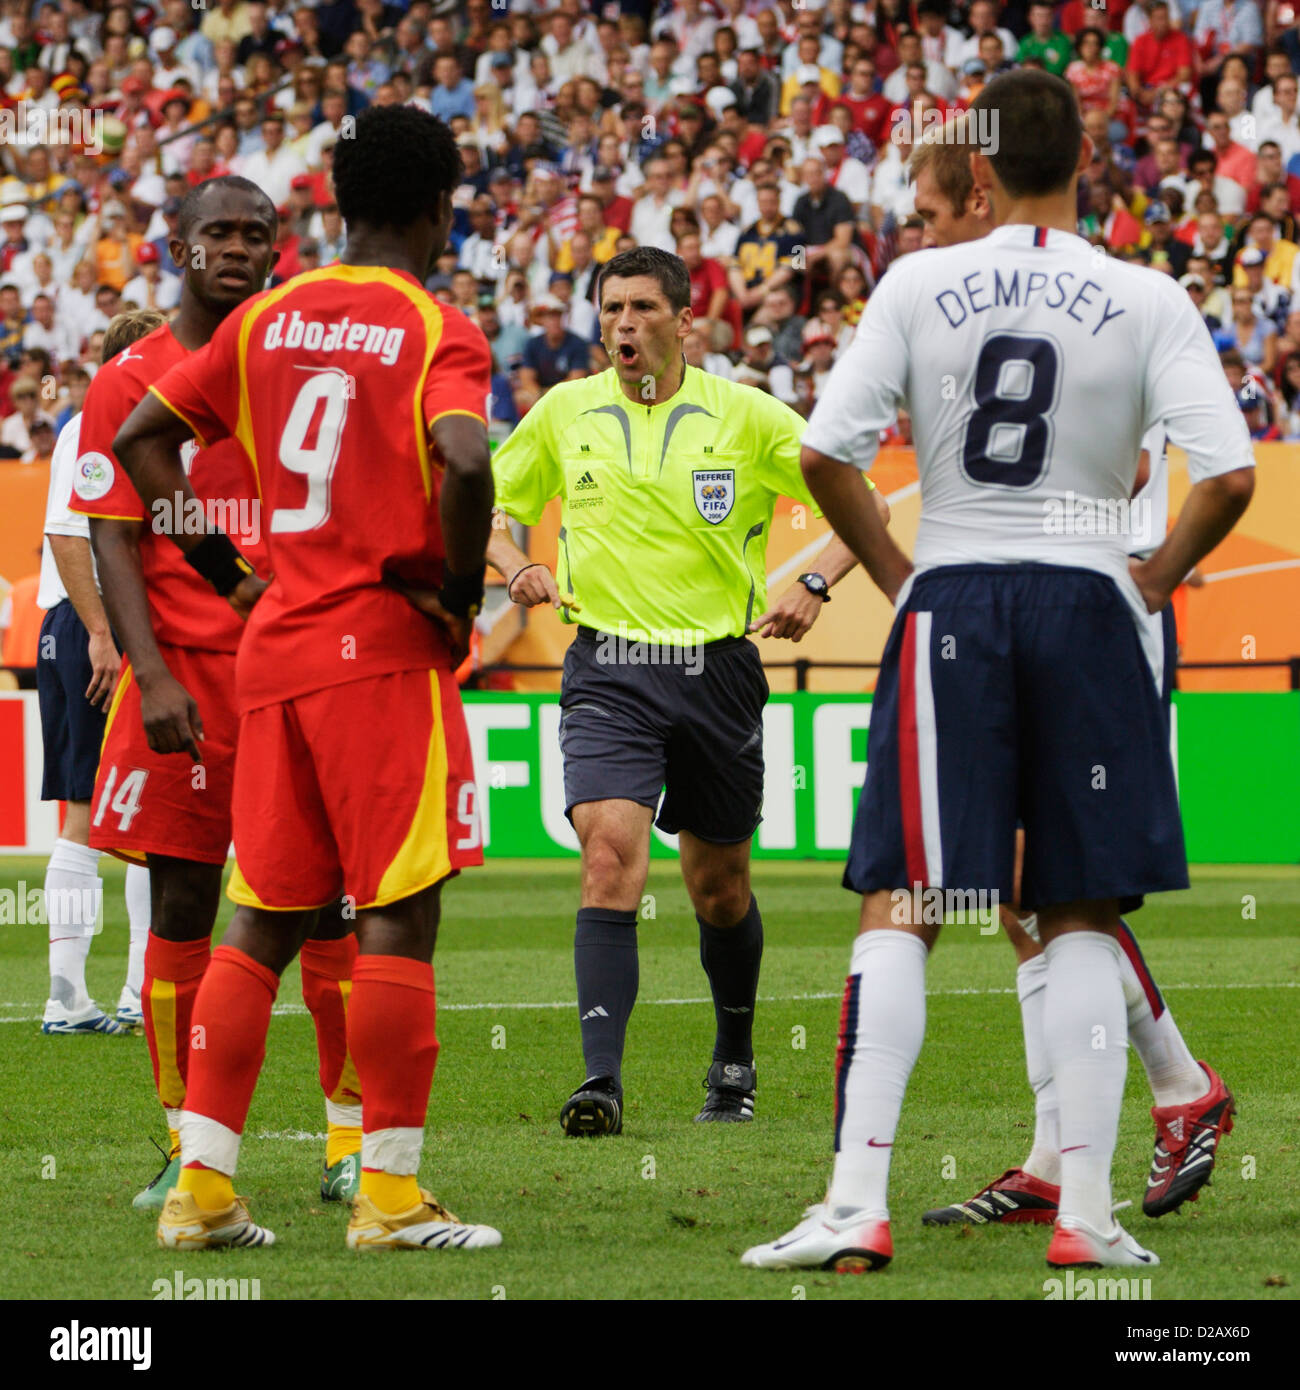 Referee Markus Merk (GER) cautions players during the FIFA World Cup Group E match between Ghana and the United States. Stock Photo